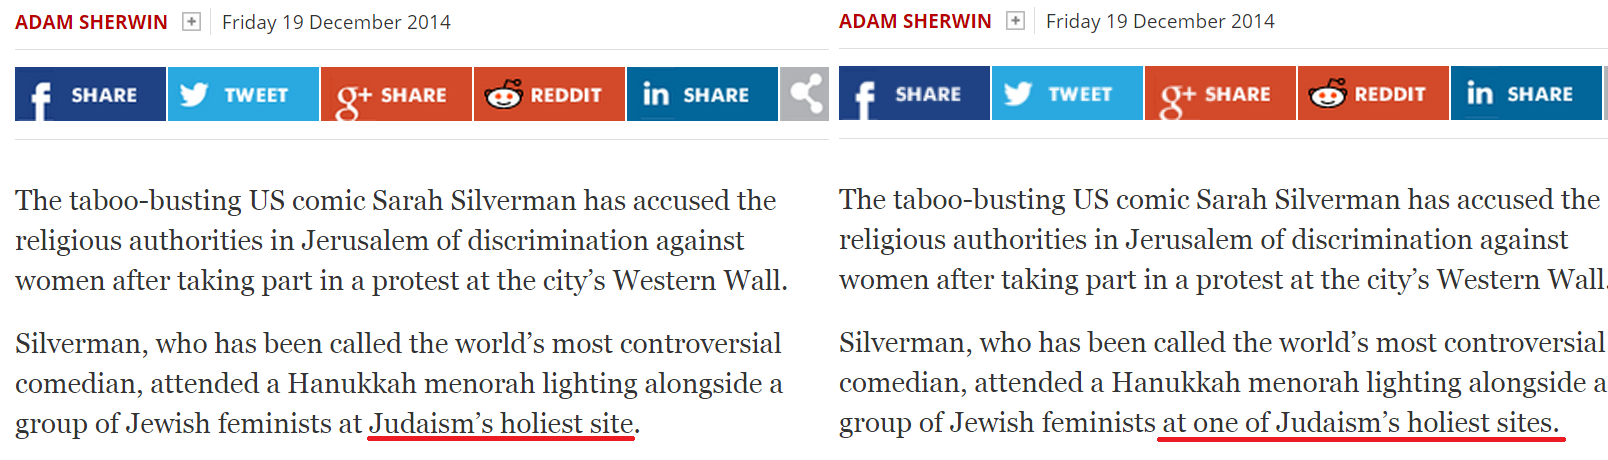 Another media outlet misidentifies Judaism's holiest site